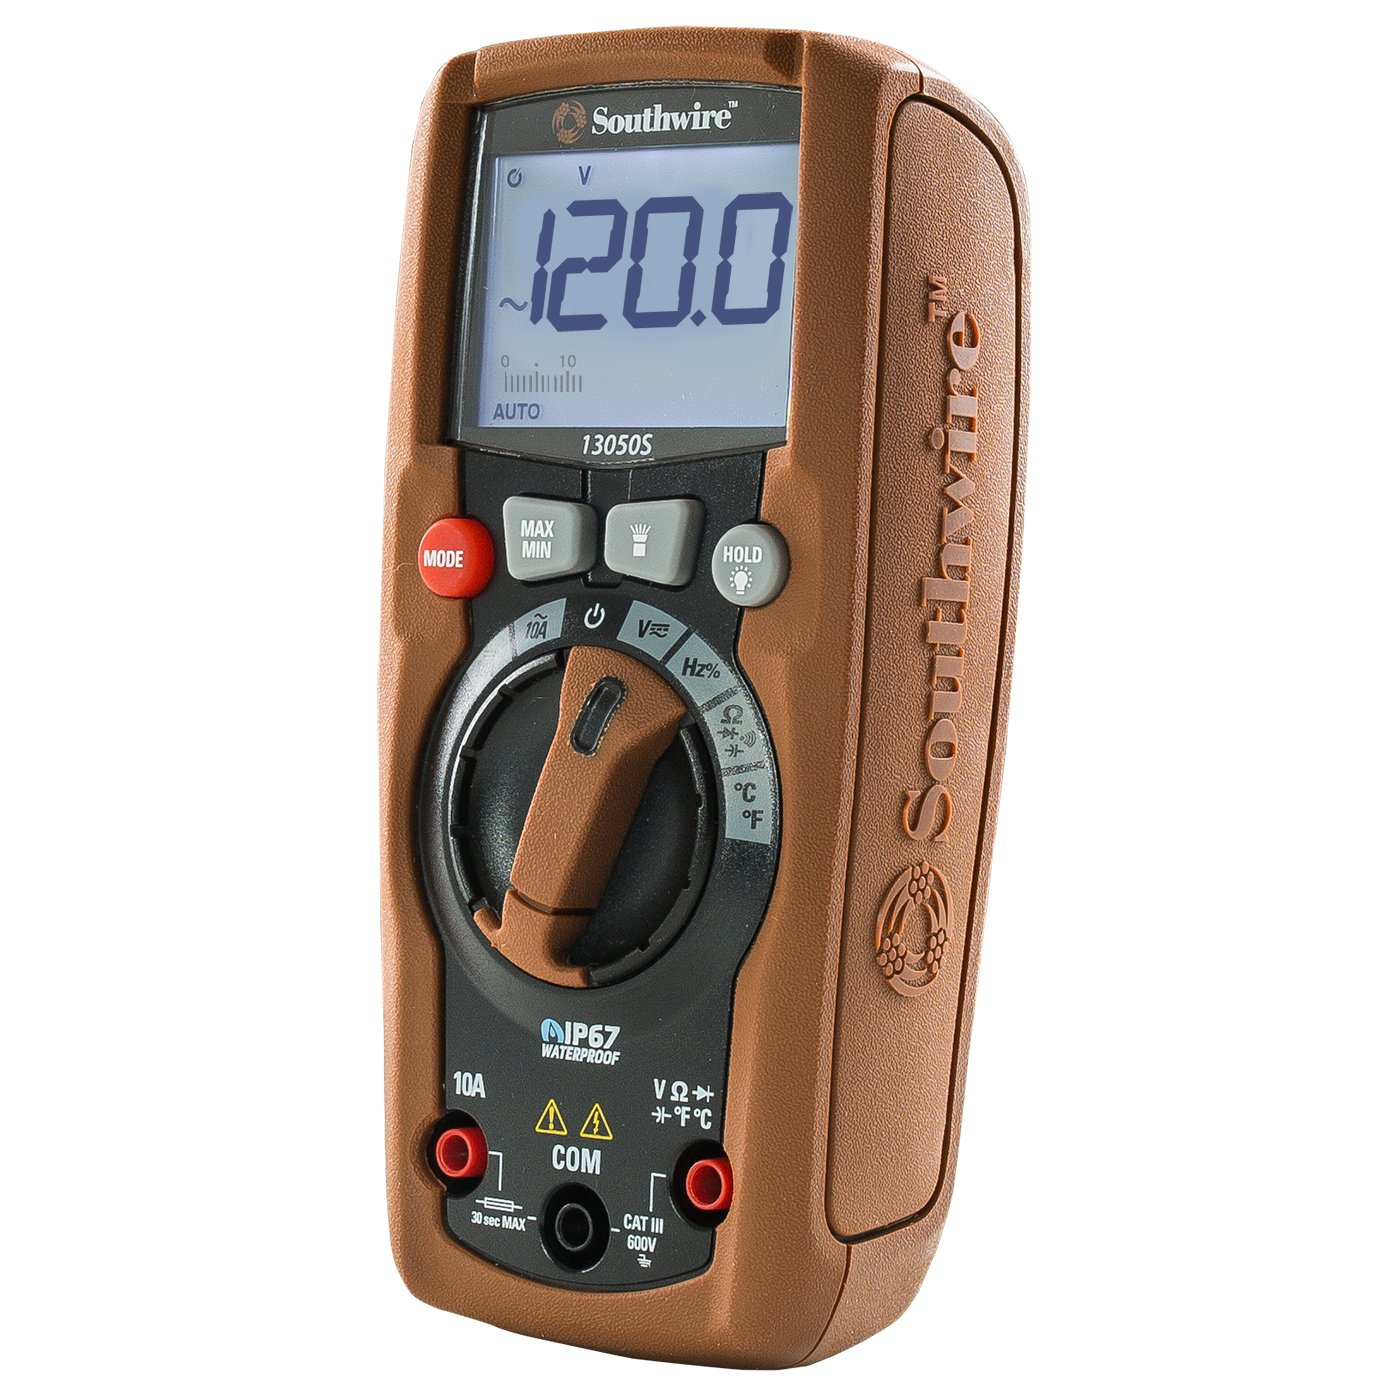 Southwire Tools & Equipment 13050S ResidentialPRO Auto-Ranging Digital Multimeter, 11 Measuring Functions